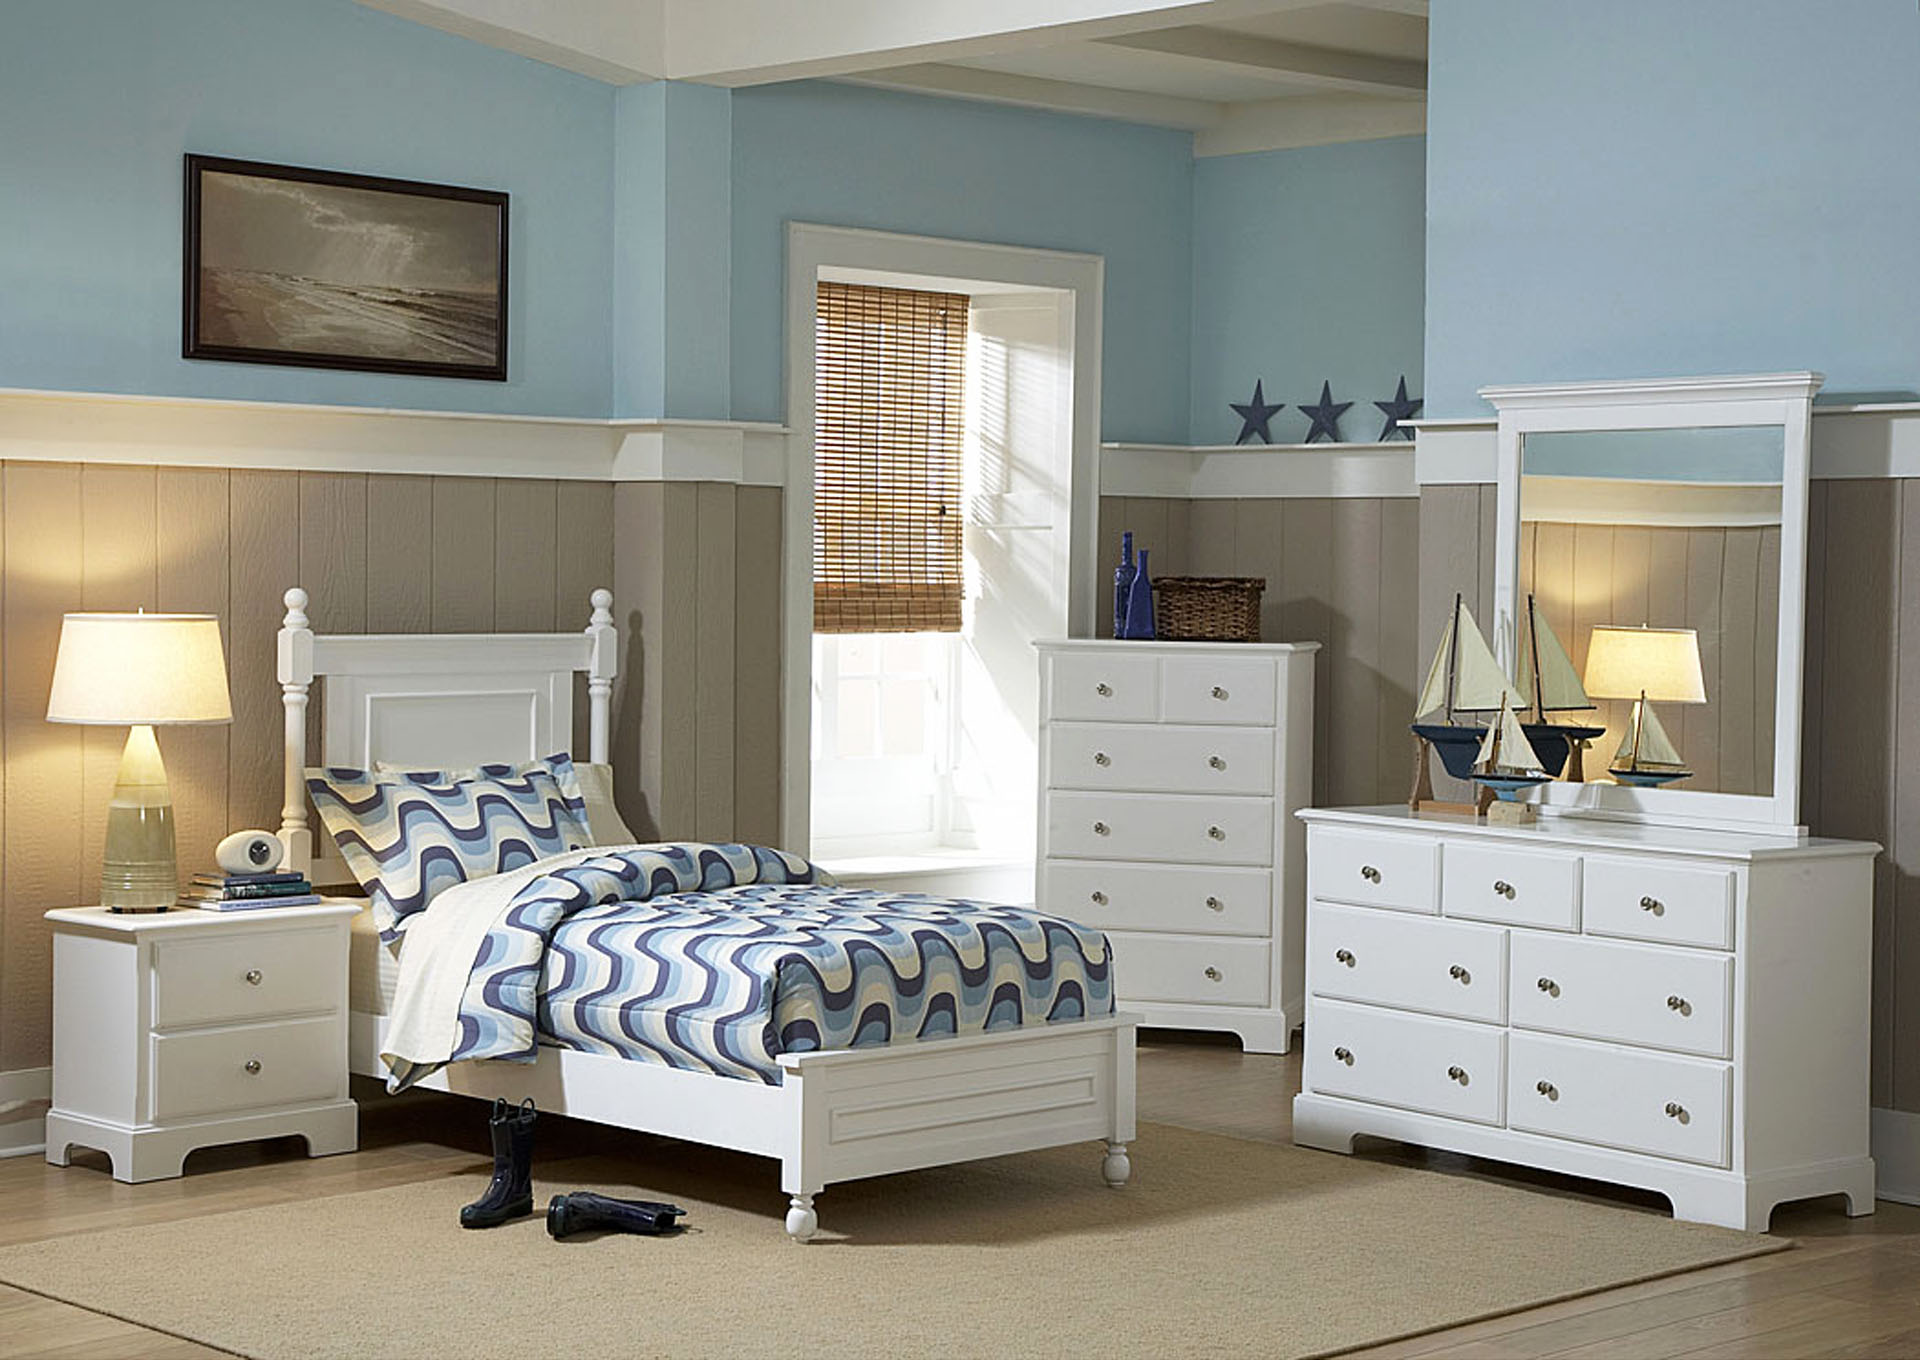 Morelle White Twin Bed,Homelegance